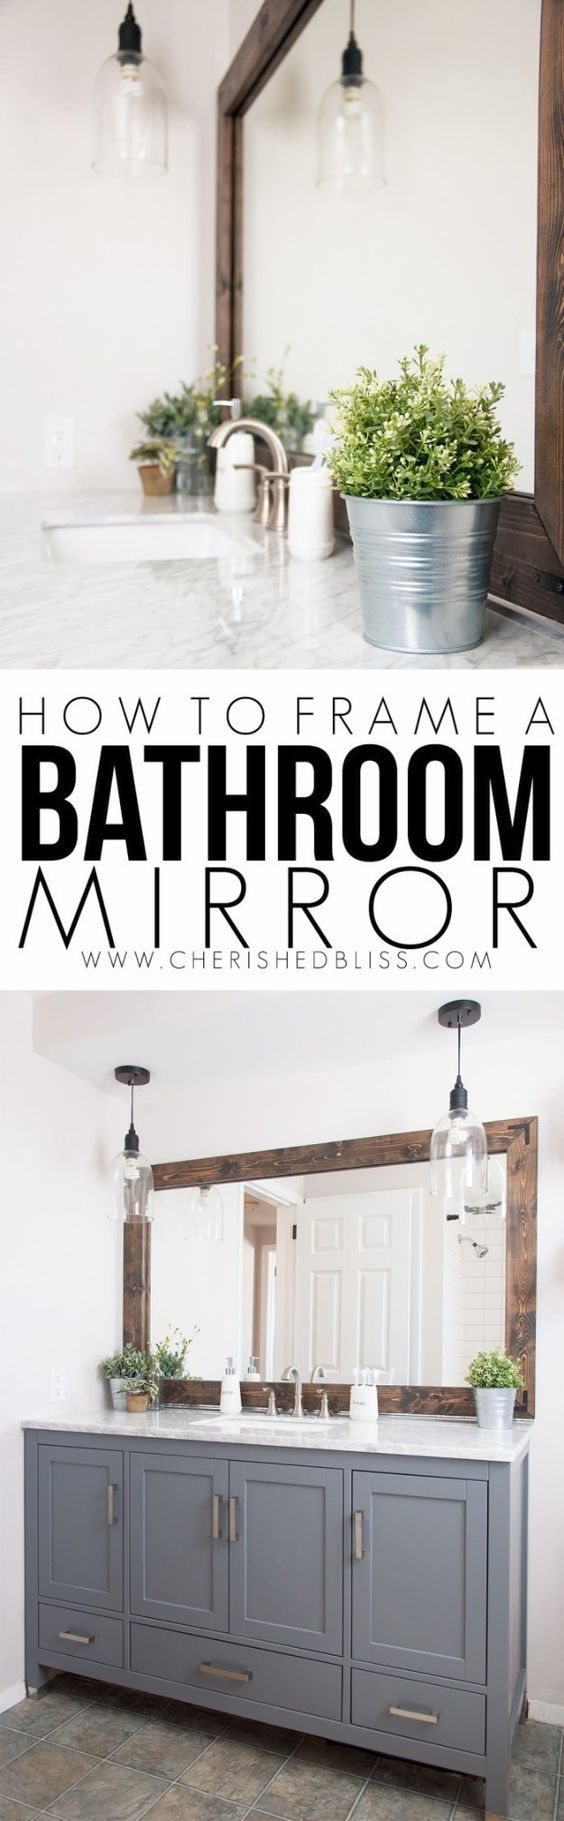 Best 61 organization bathroom images on pinterest home - Diy bathroom decor ideas ...